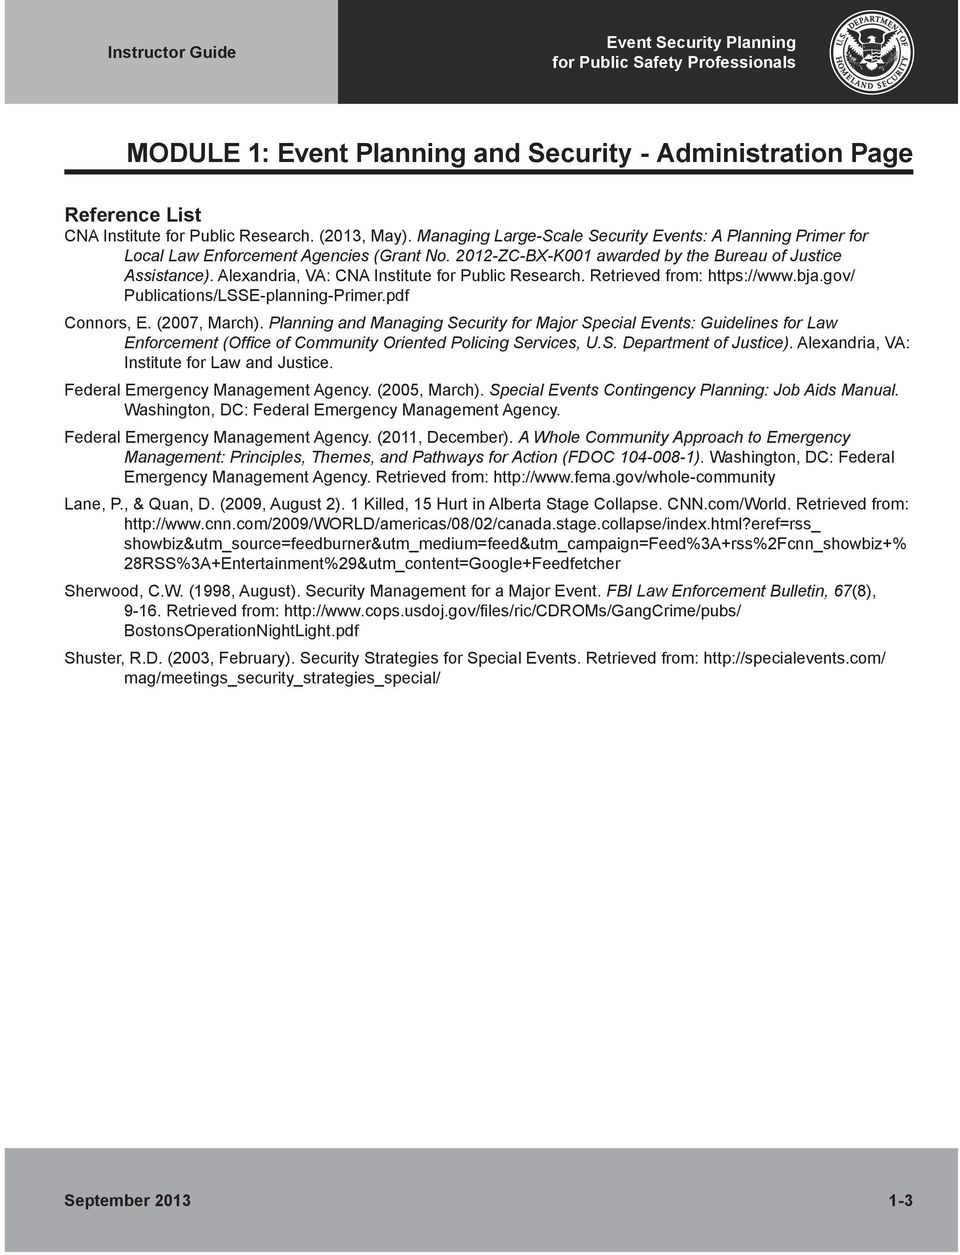 MGT 335: Event Security Planning for Public Safety Professionals - PDF